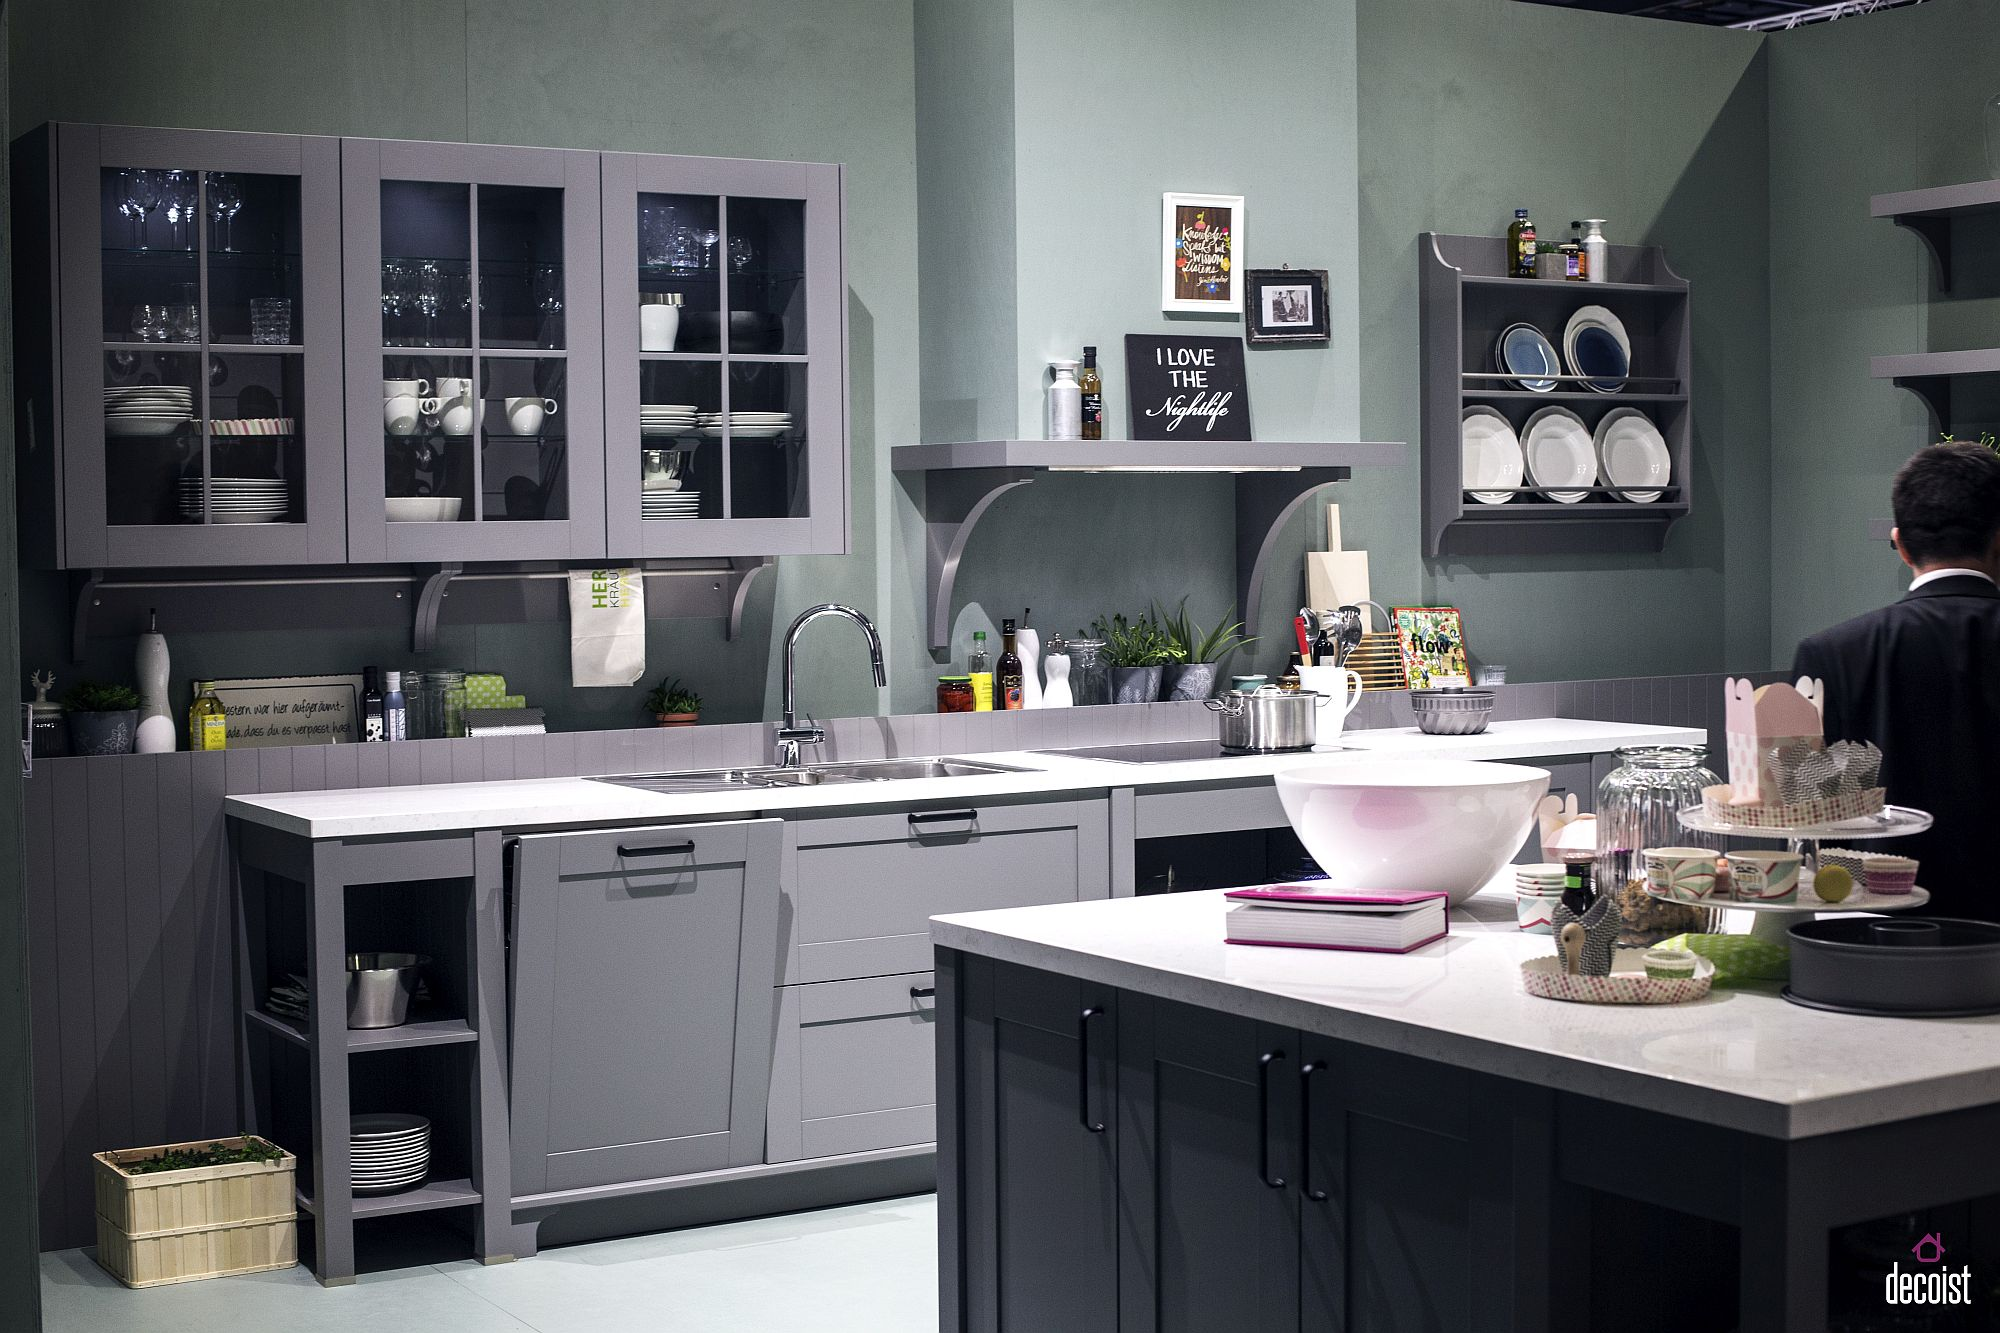 Combining-light-and-dark-shades-of-gray-in-the-kitchen-efficiently